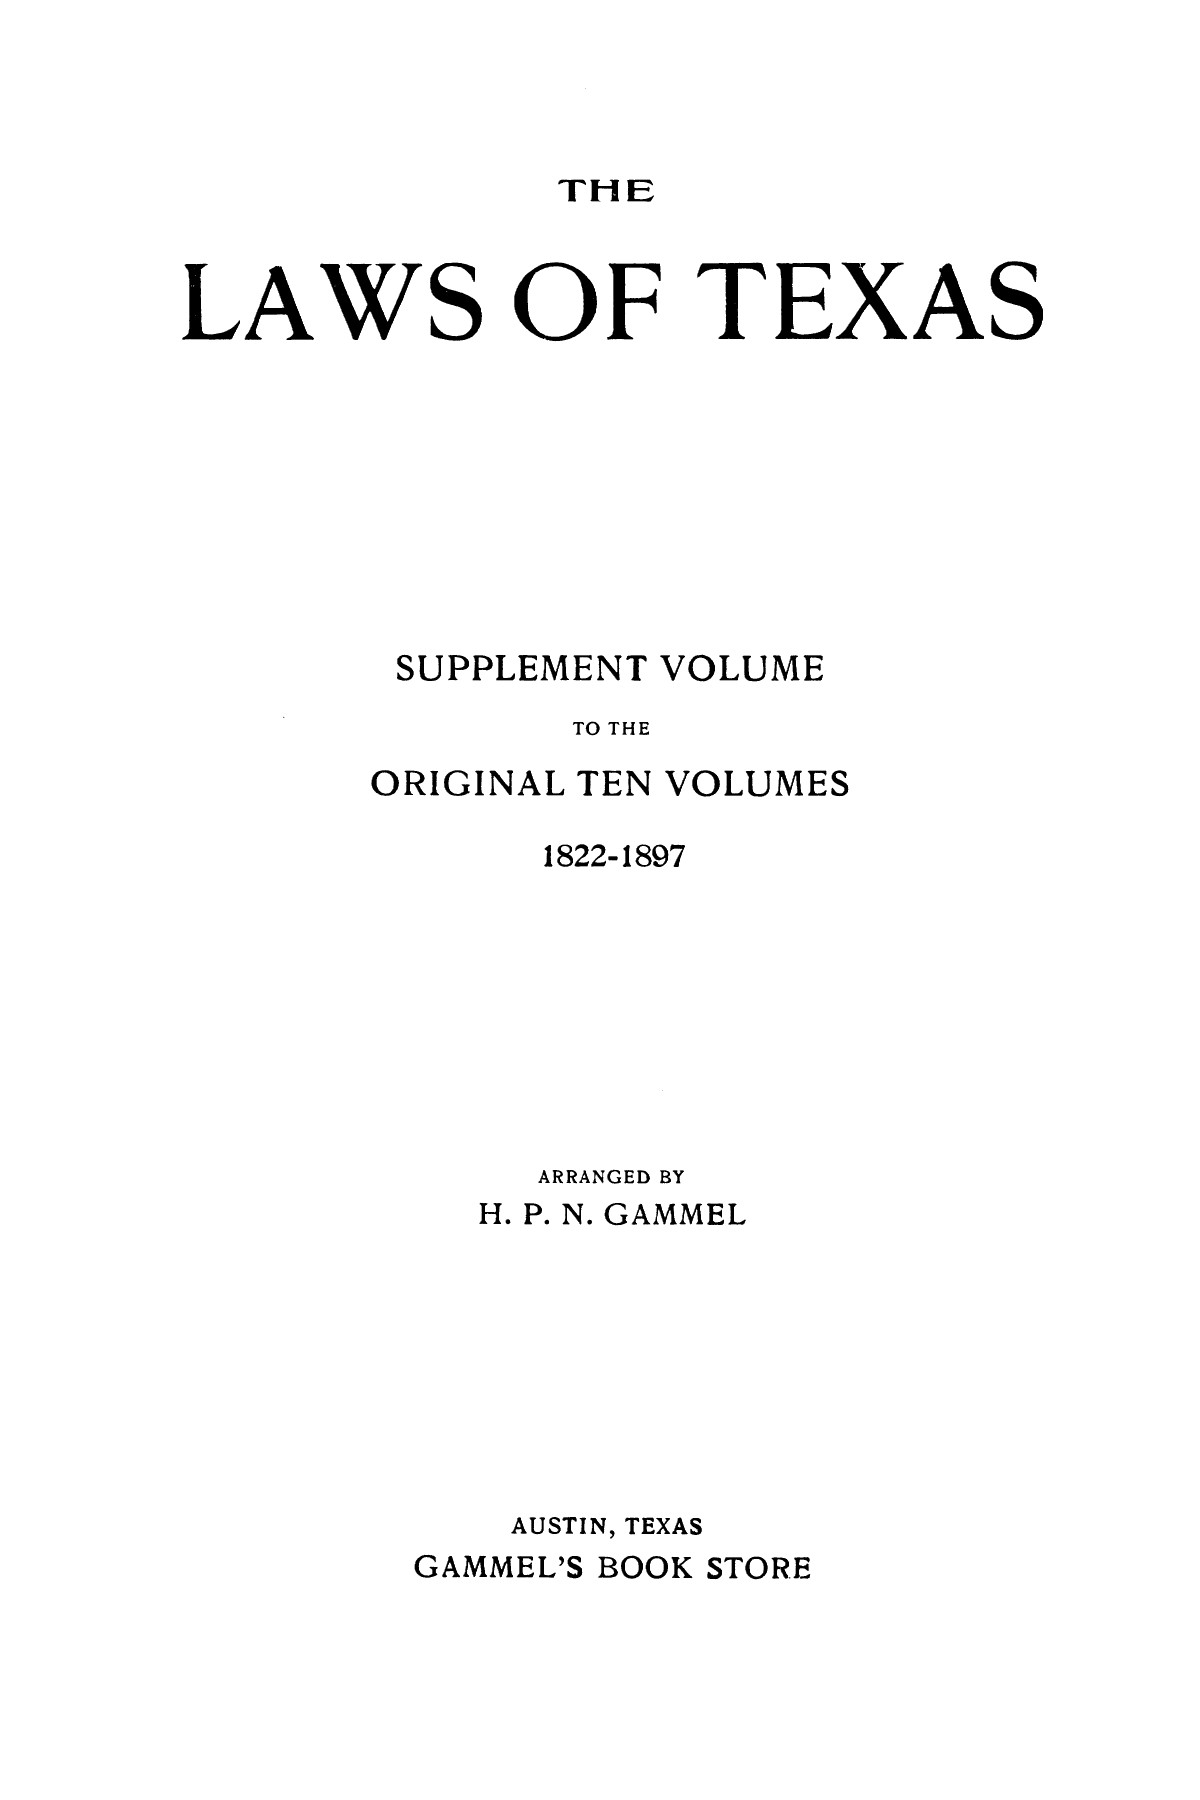 The Laws of Texas, 1921 [Volume 21]                                                                                                      [Sequence #]: 1 of 1670